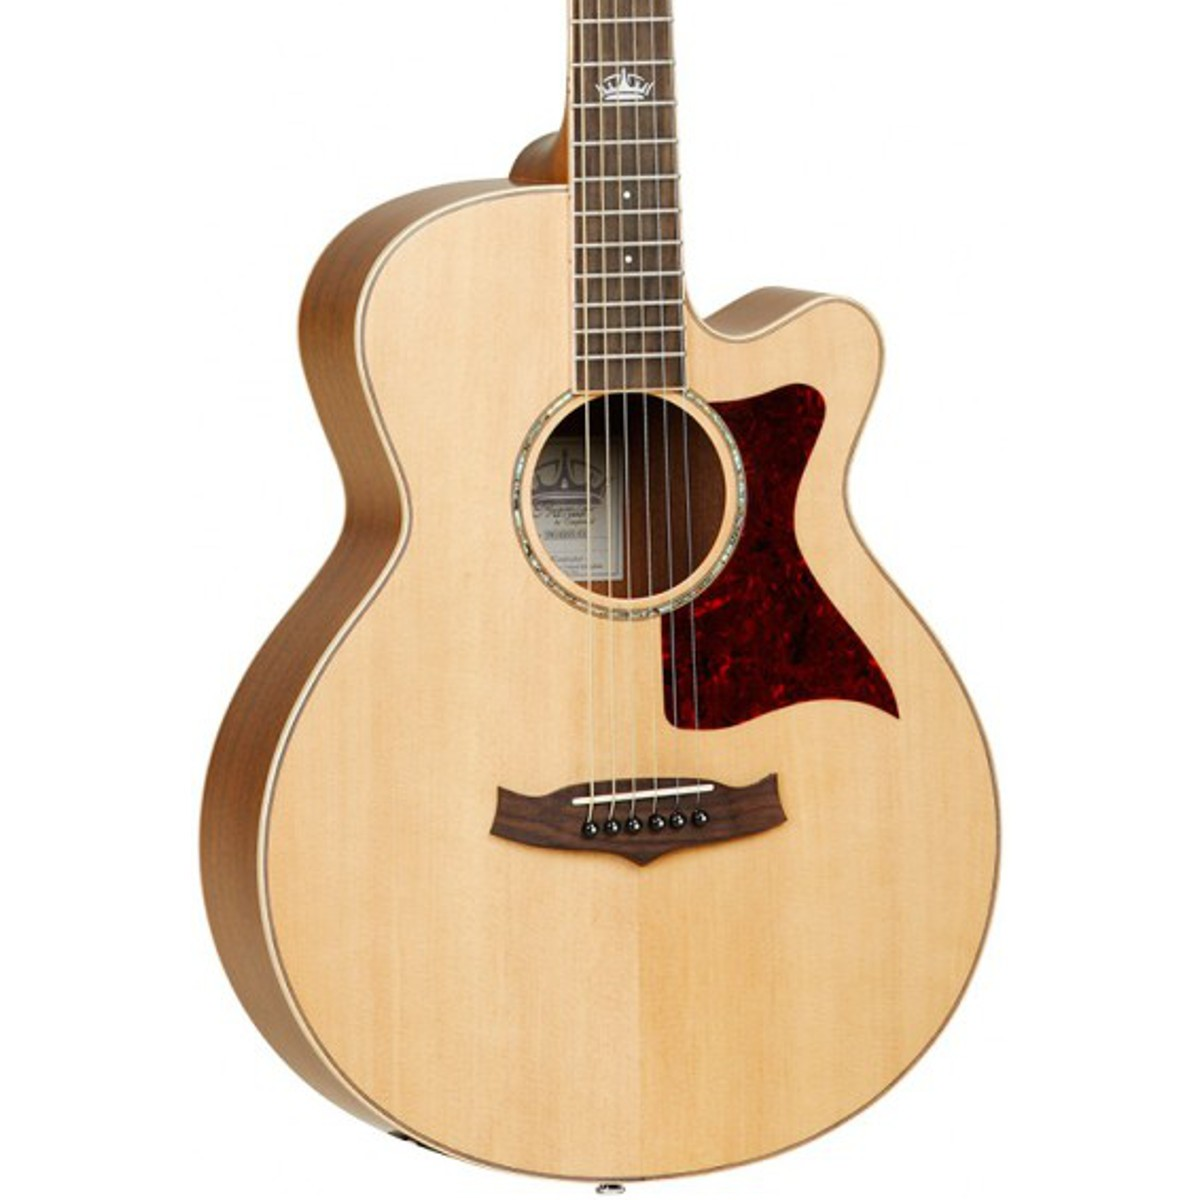 Tanglewood tw145 premiere series electro acoustic guitar for The tanglewood